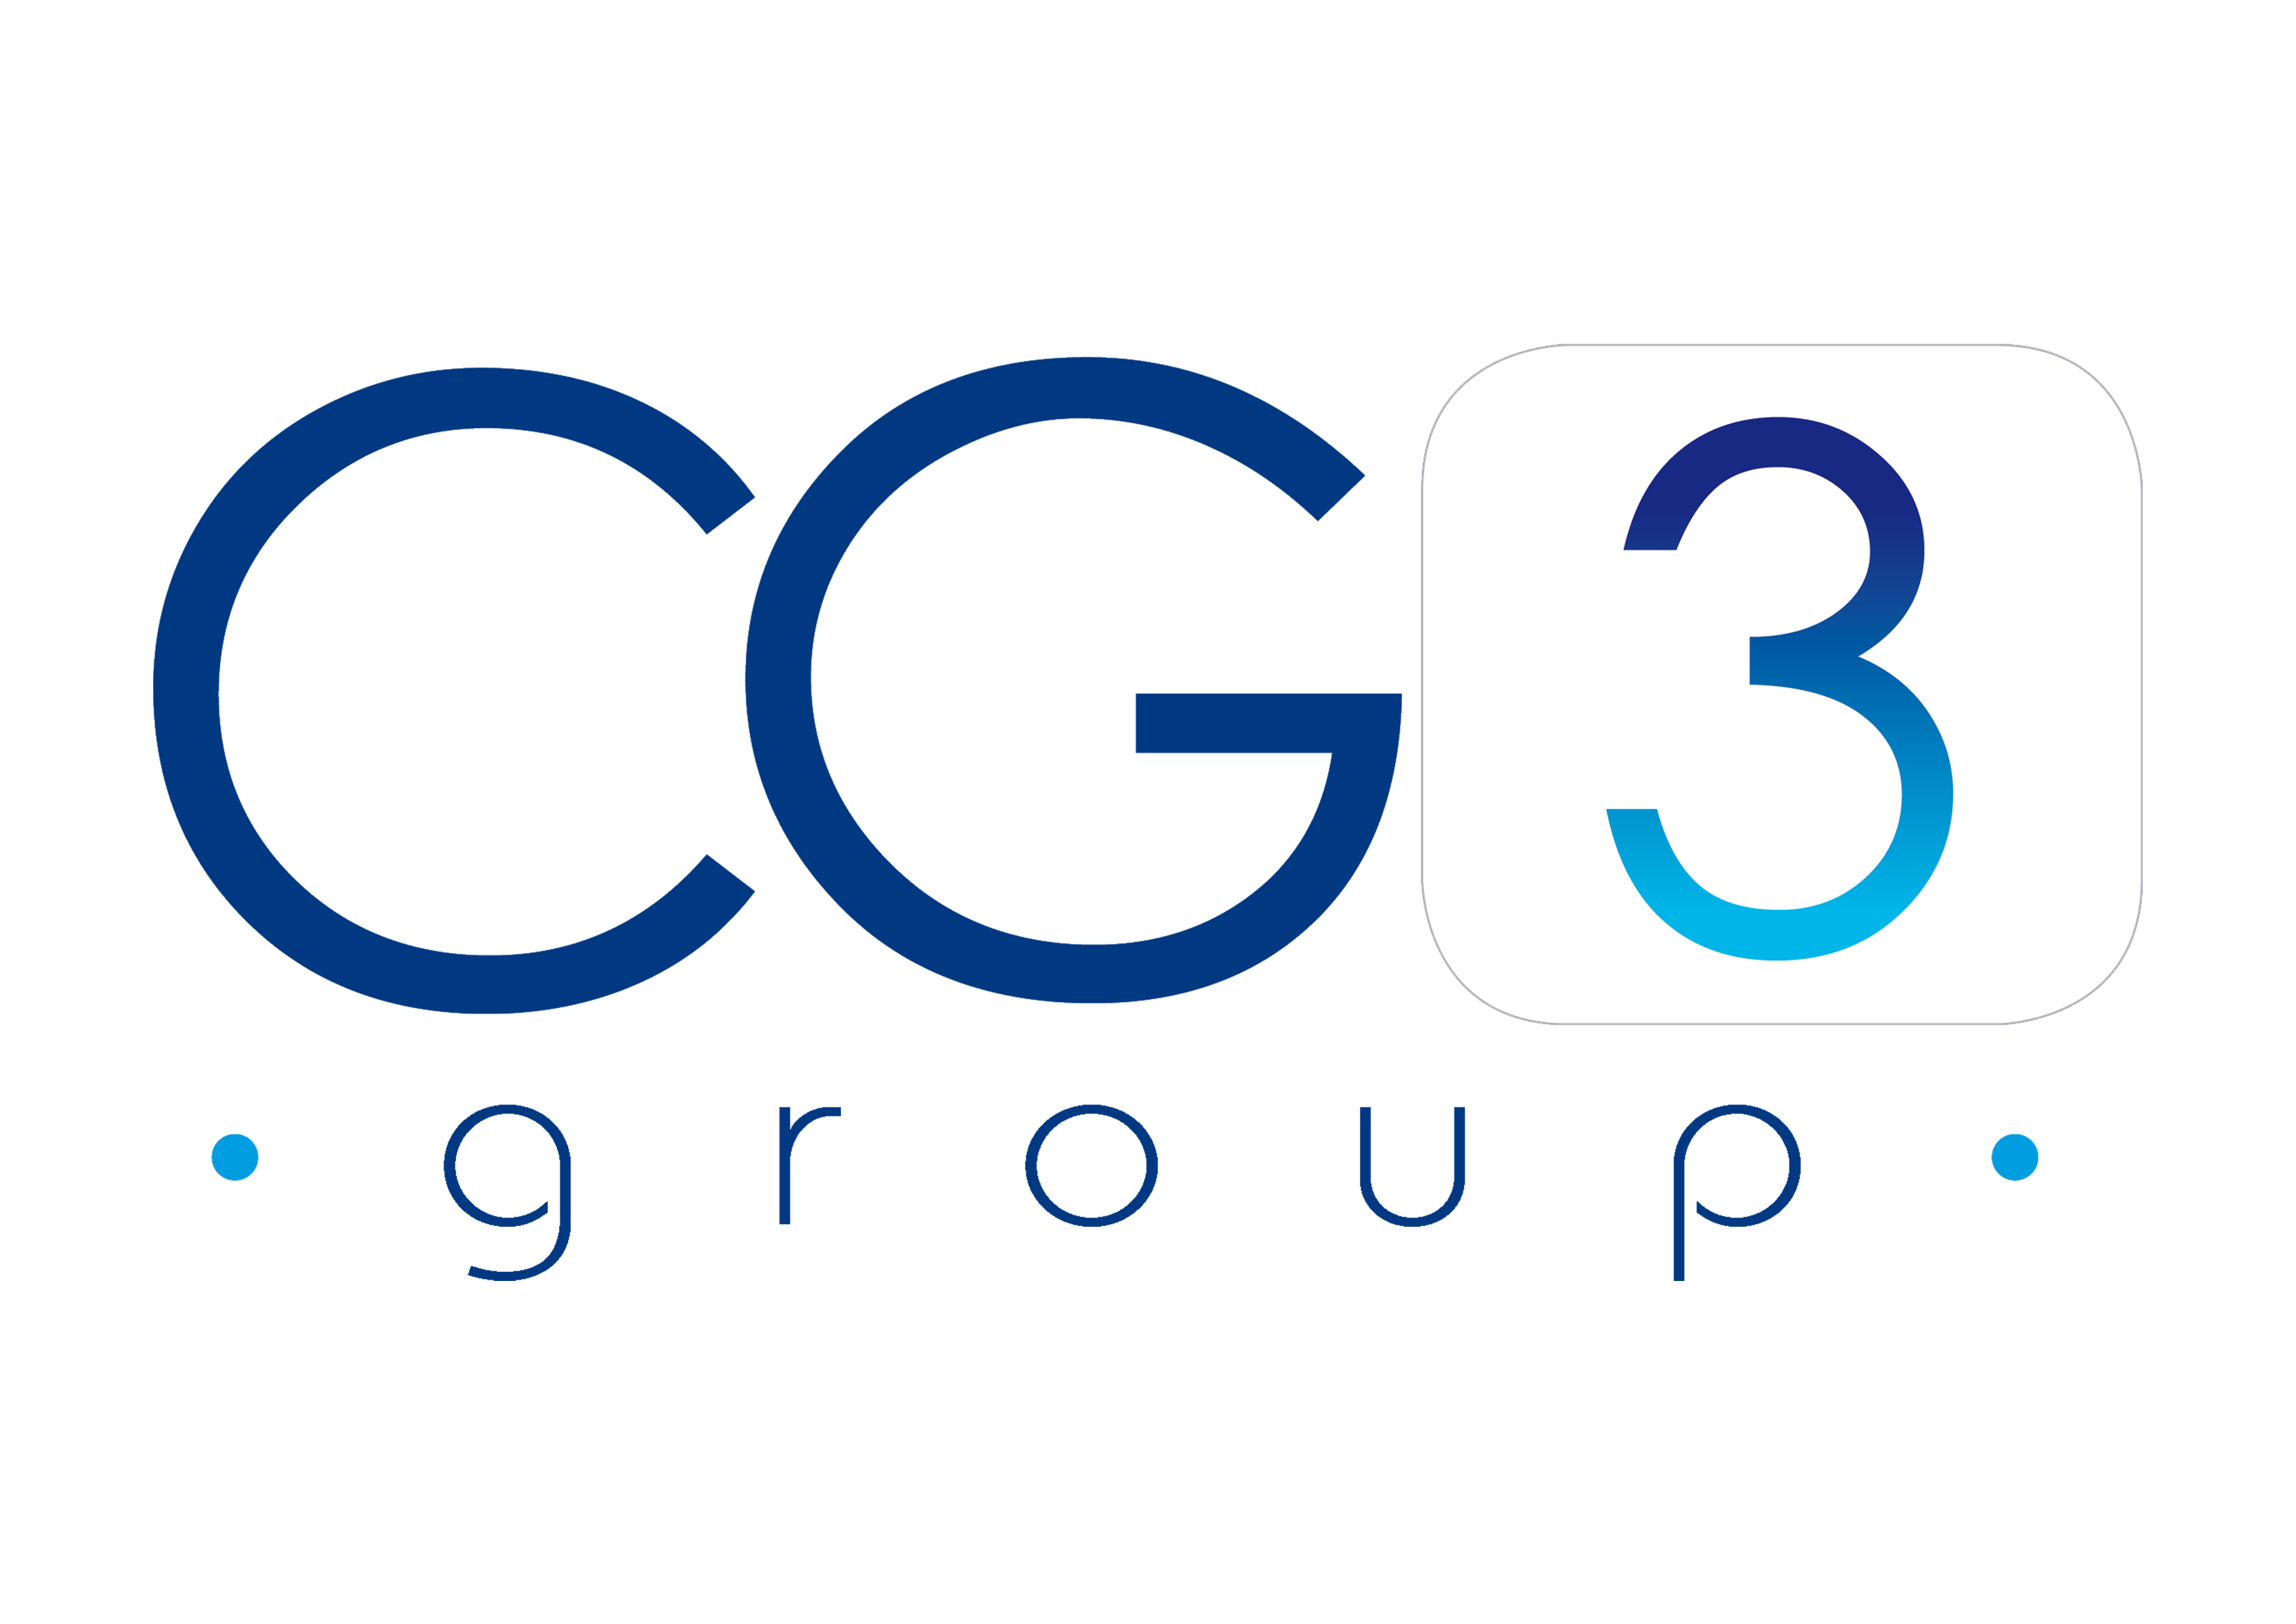 Logo CG3 Group